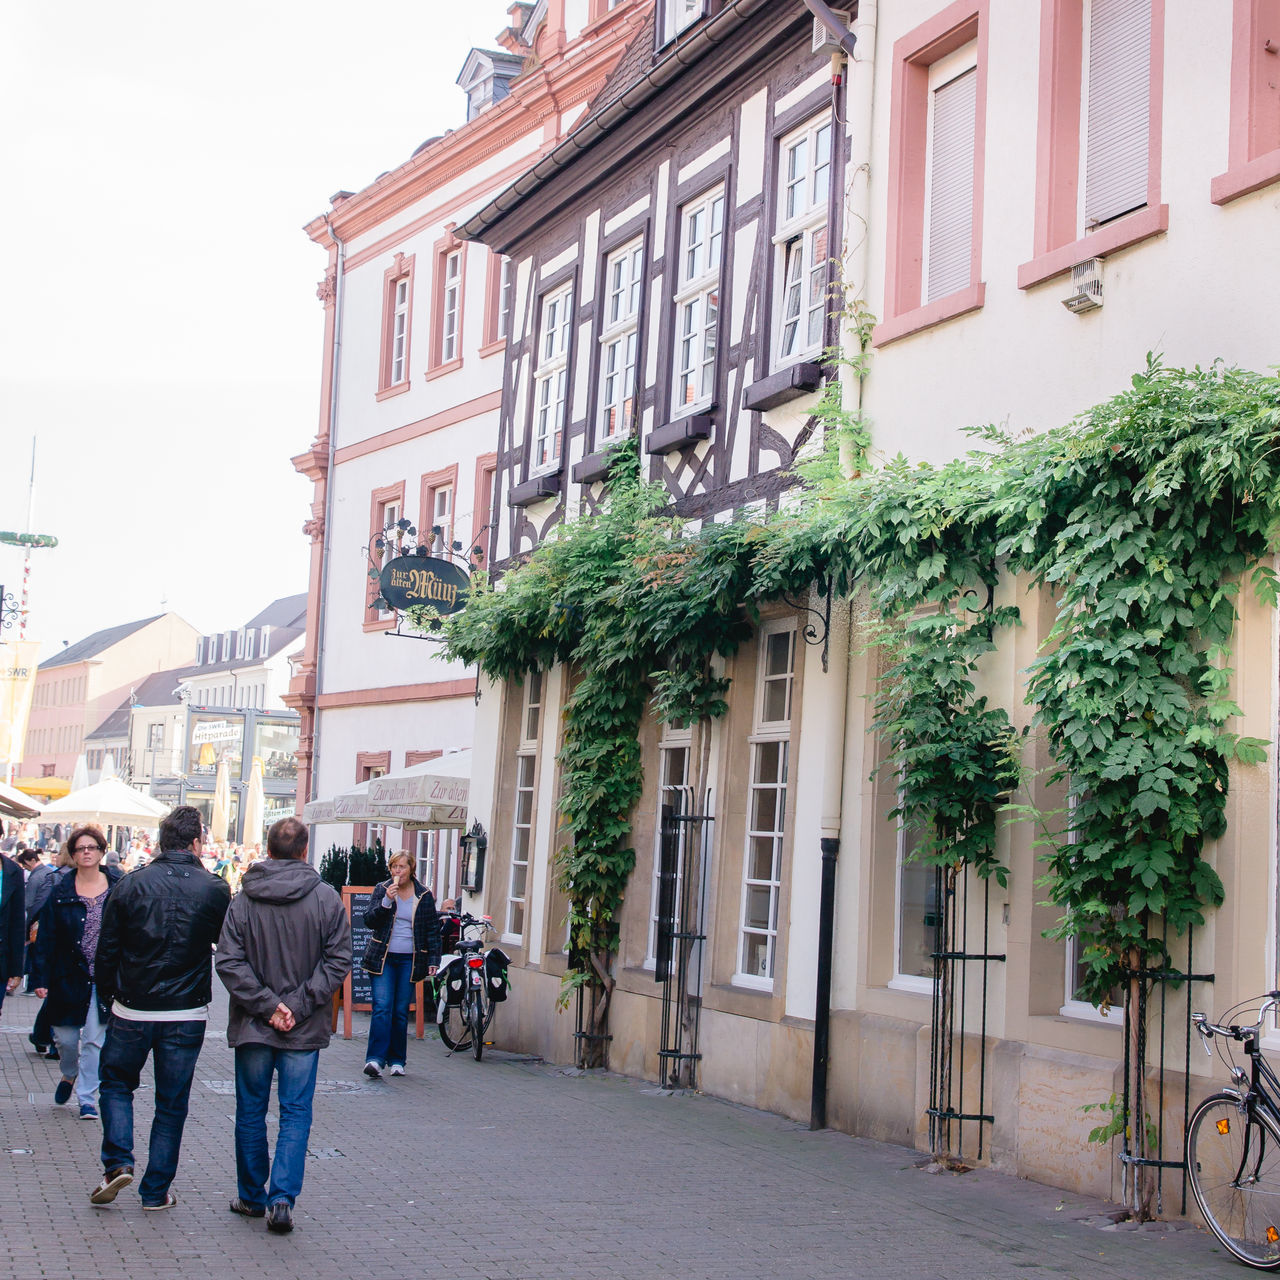 Adult Adults Only Architecture Building Exterior Built Structure City Day EyeEmNewHere Germany Half-timbered House Men Outdoors People Real People Rheinland-Pfalz  Speyer Travel Windmade